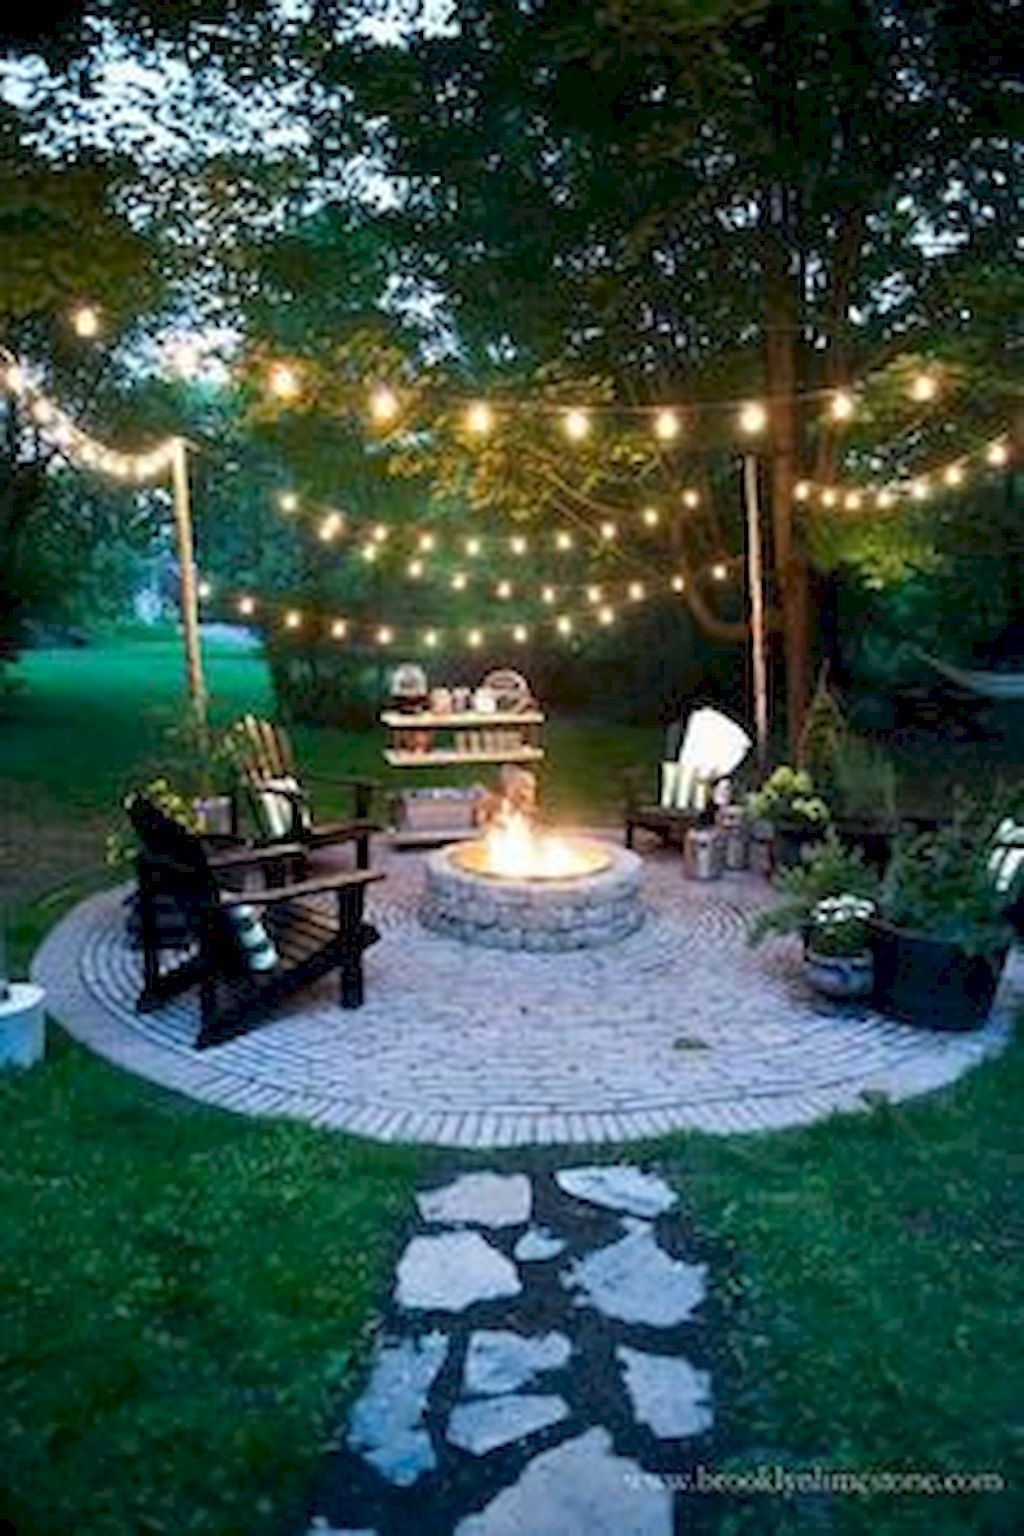 Cool 85 Easy Diy Backyard Seating Area Ideas On A Budget Https Crowdecor